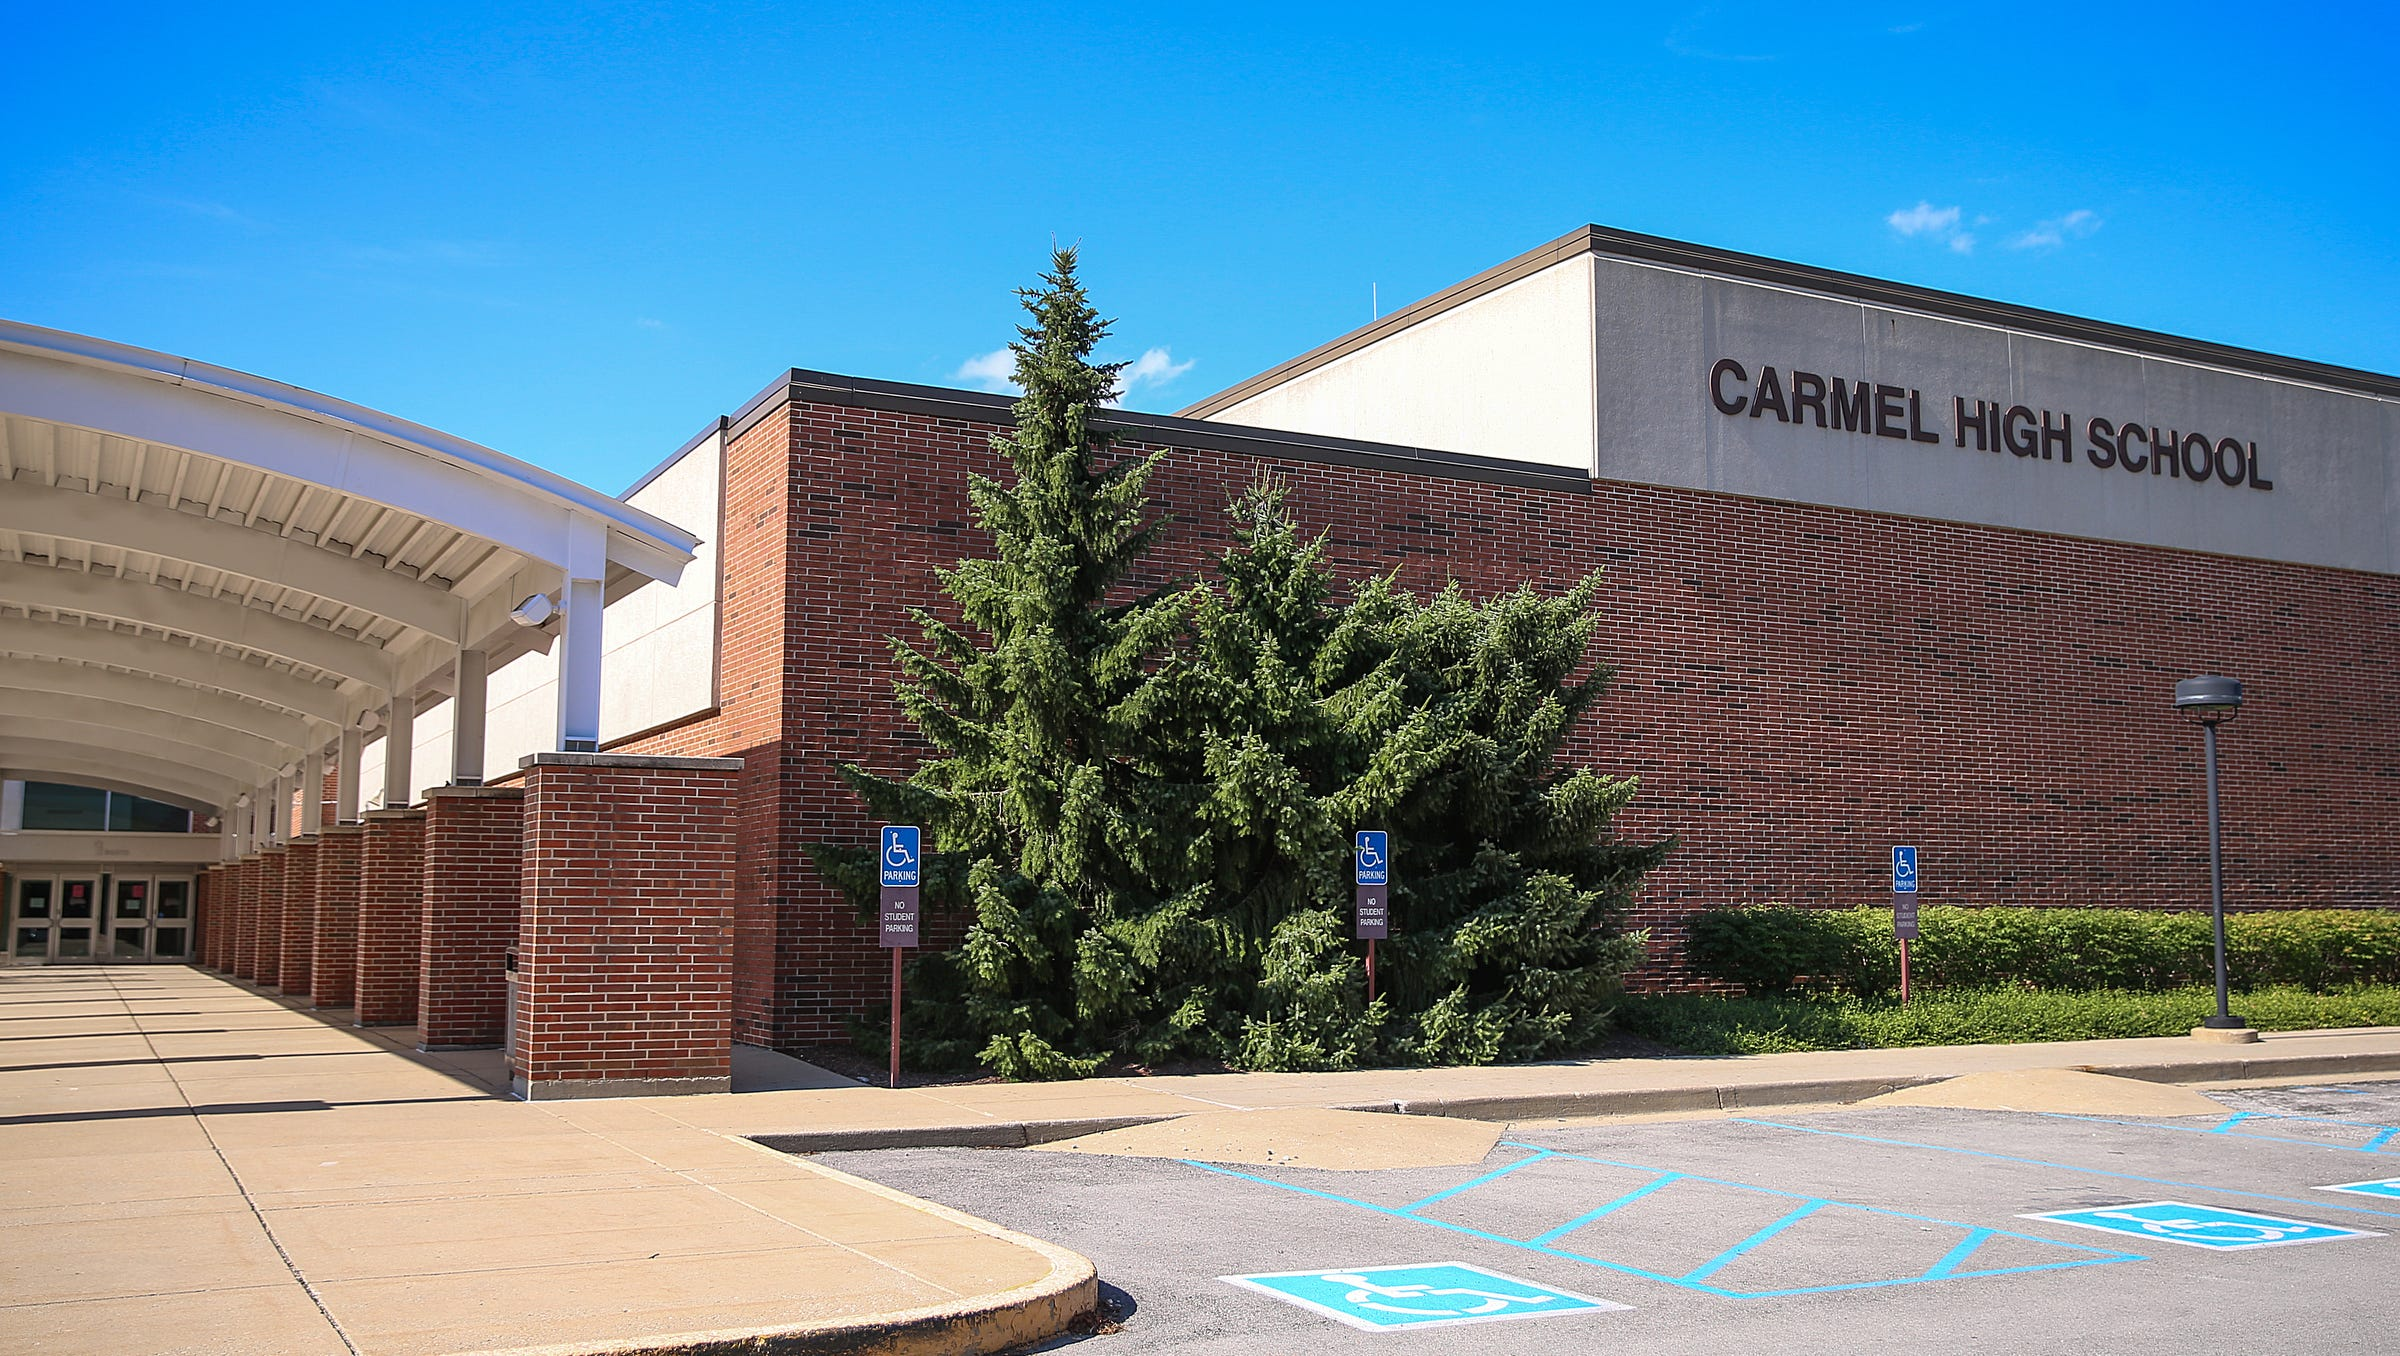 Carmel High School named in top 5 best Indiana schools by new ranking